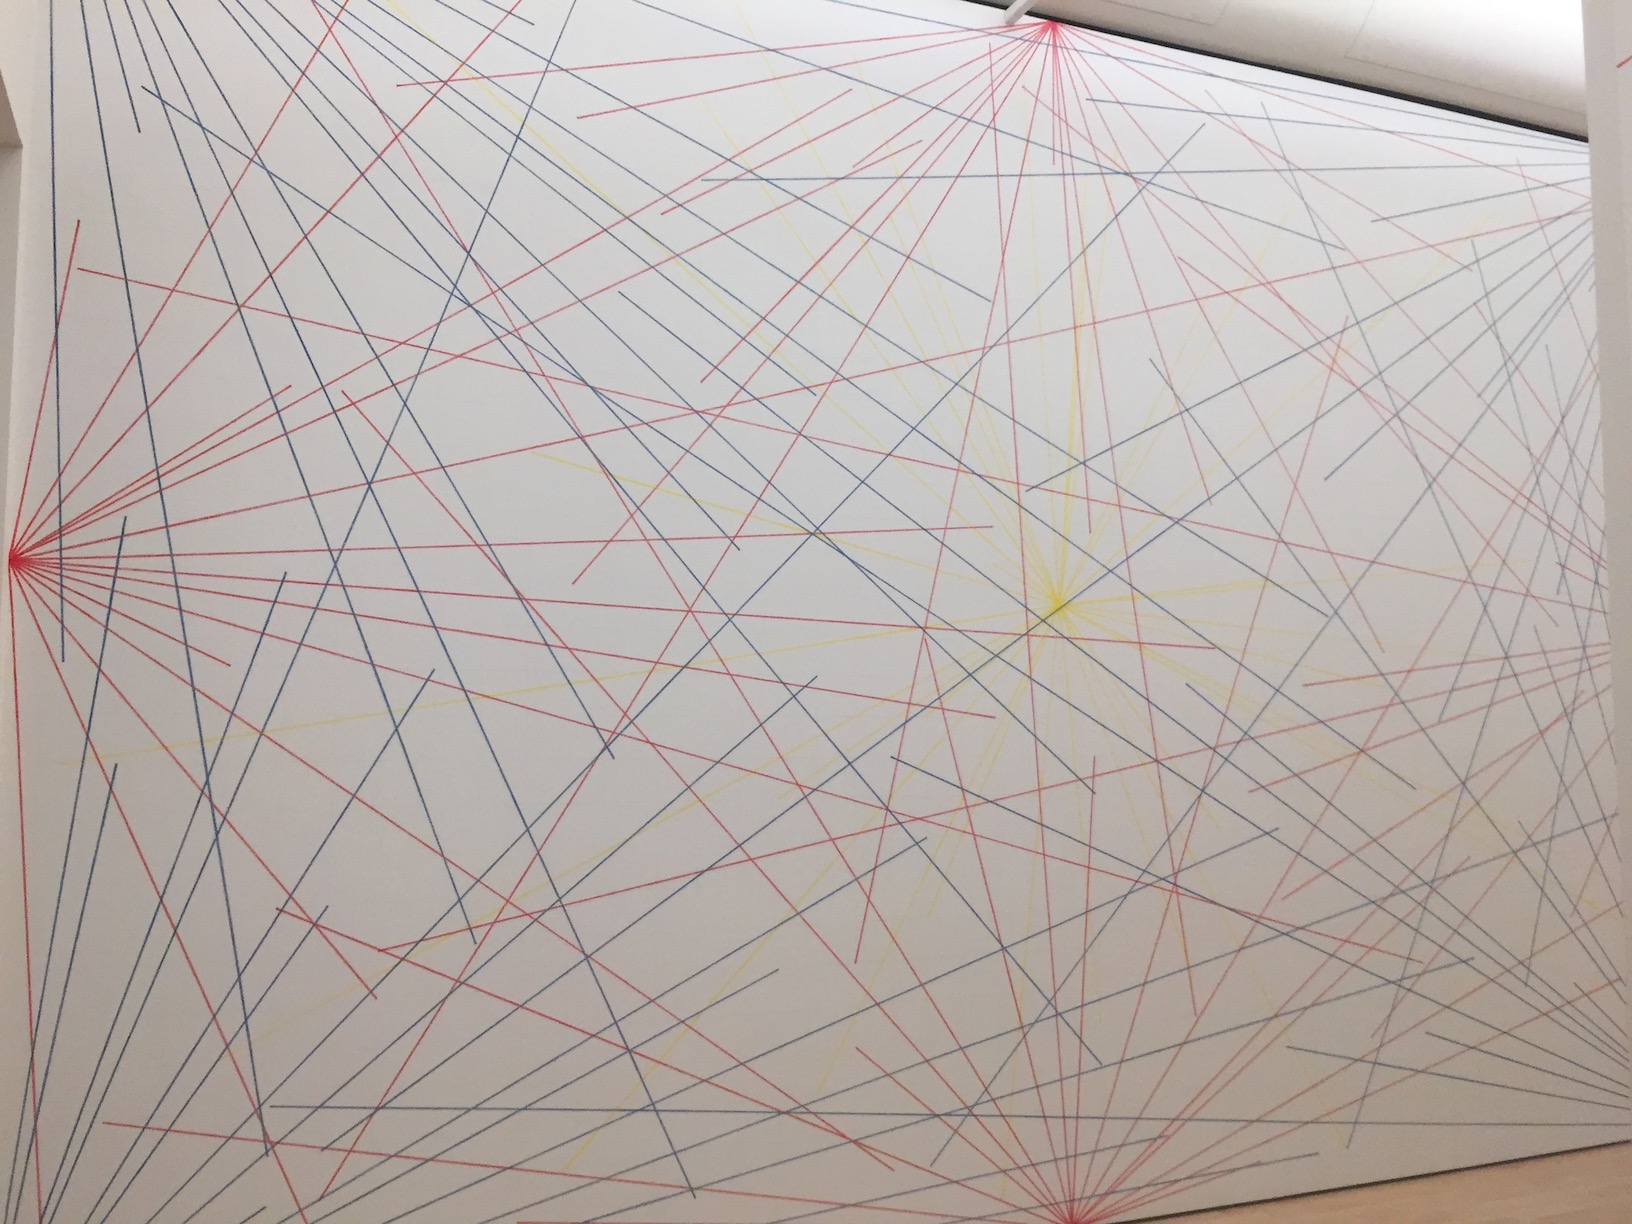 Sol LeWitt's Wall Drawing #273